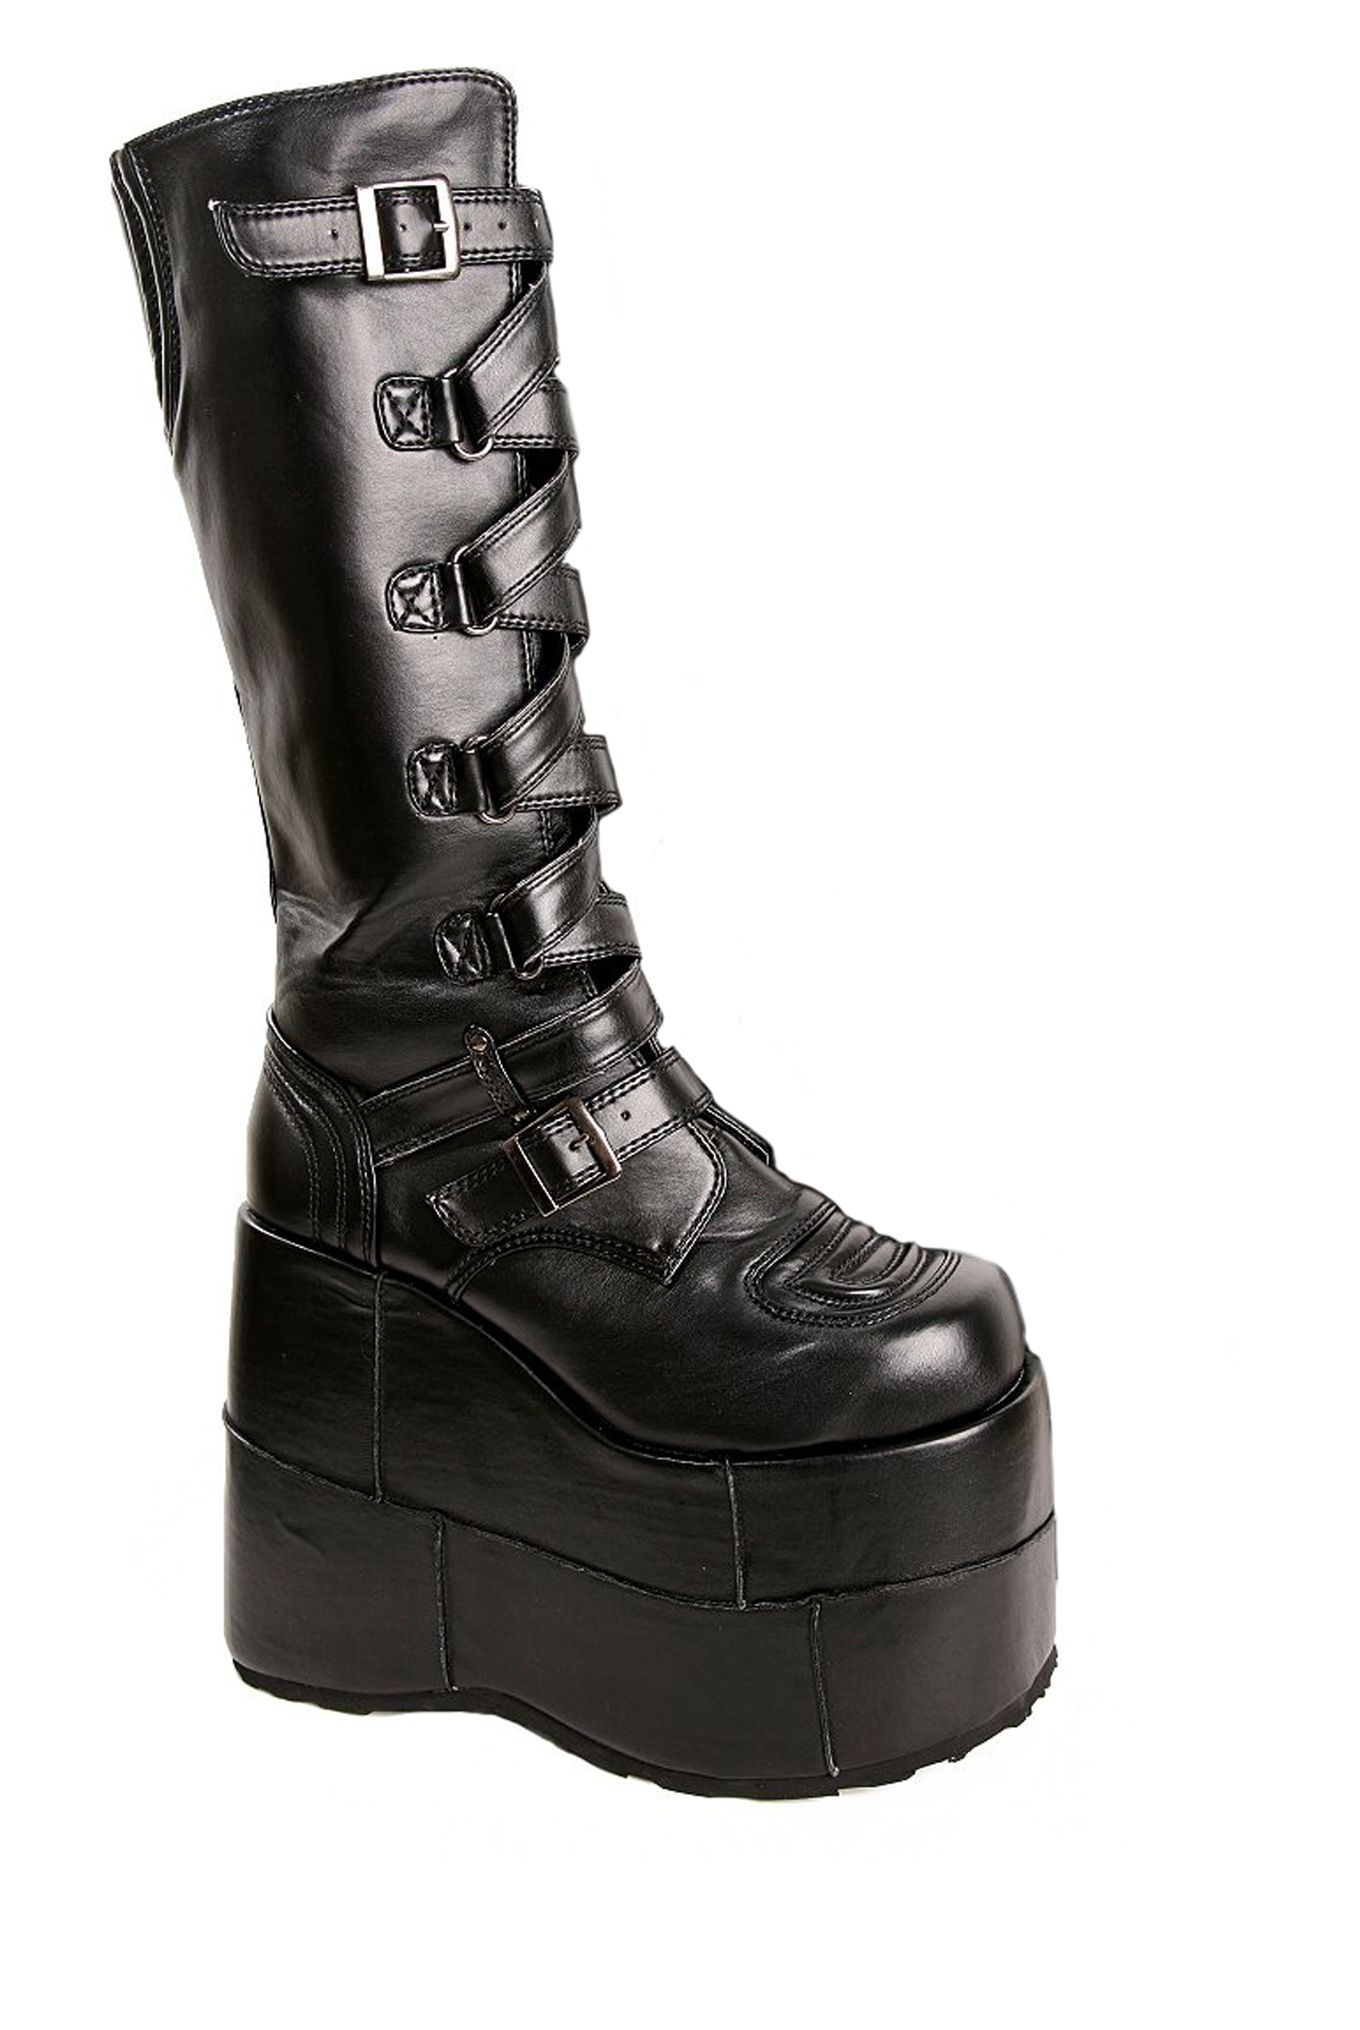 b1419b7a79a Demonia By Pleaser Swing Black Patent Buckle Strap Boots